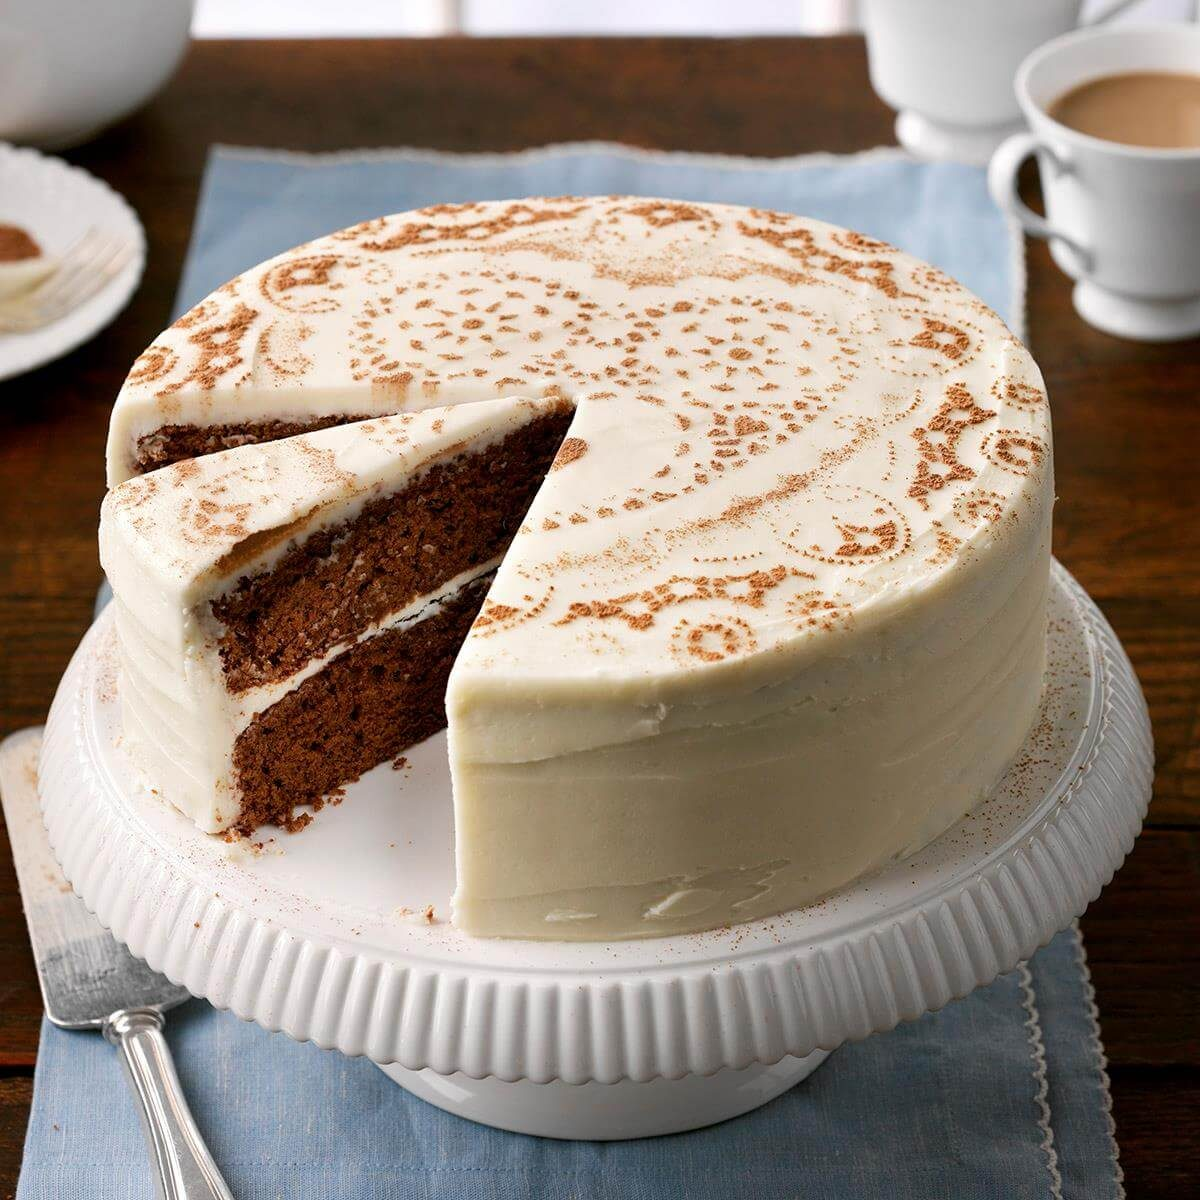 26 Classic Homemade Cakes From Scratch